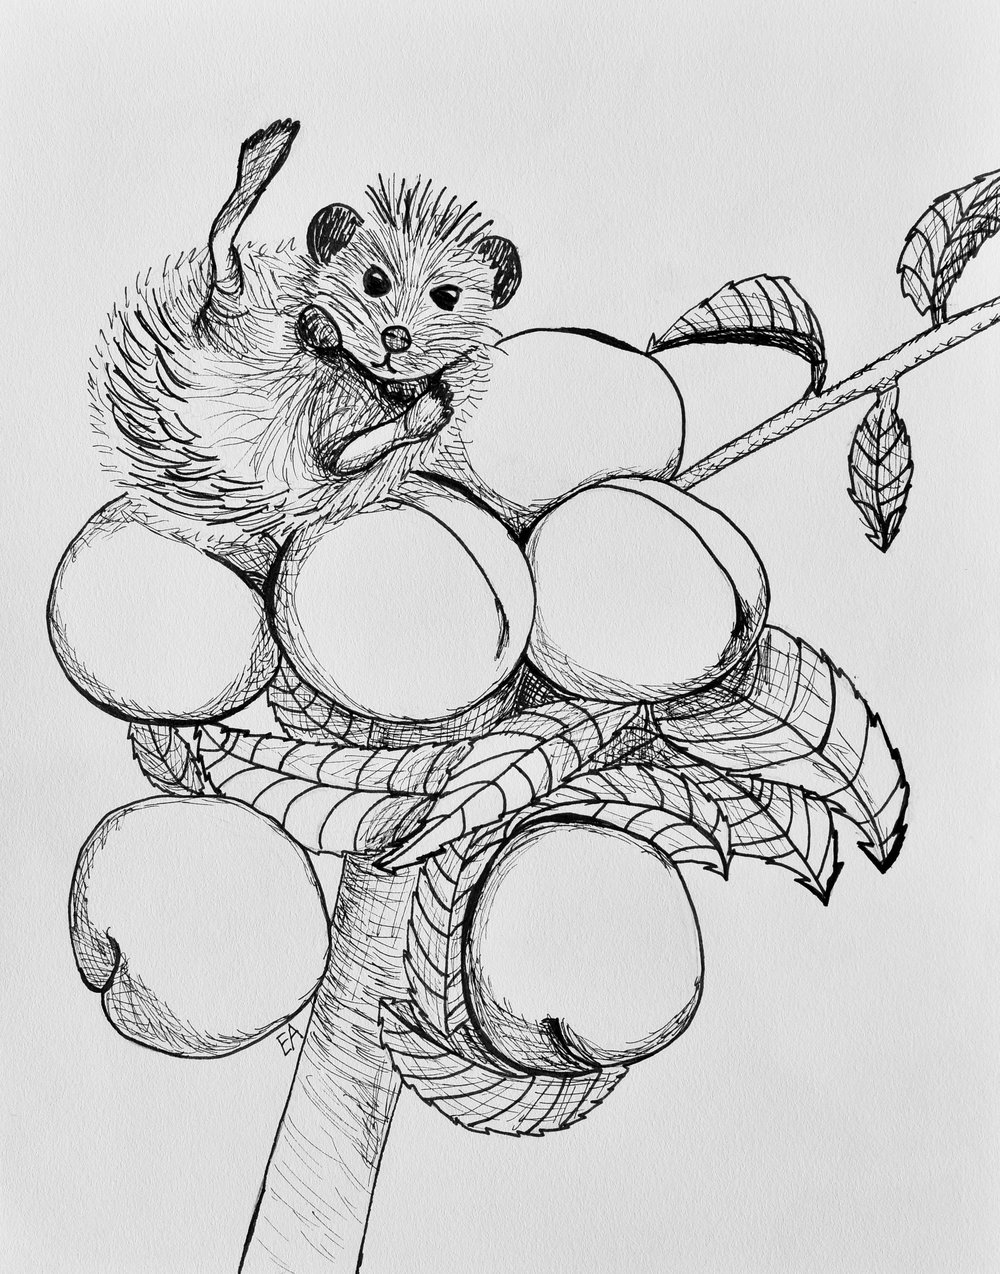 """Peachtree Hedgehog"" 8x10 Pen on Strathmore 400 series paper. SOLD."